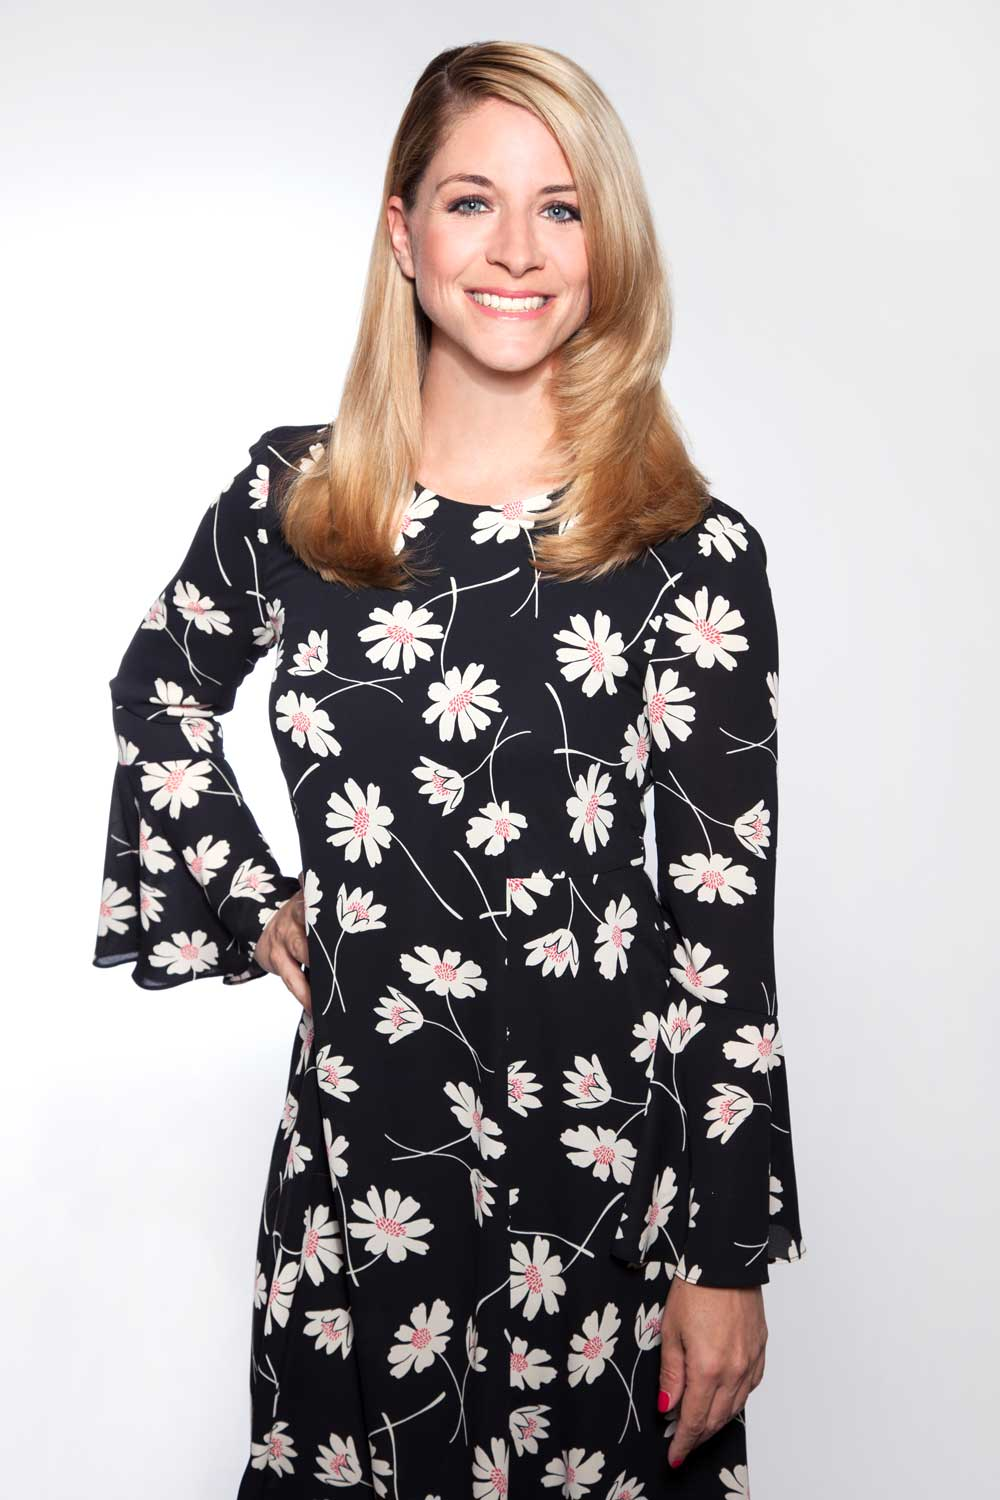 susi-herzberger-outfit-floral-Moderation-sommerfest